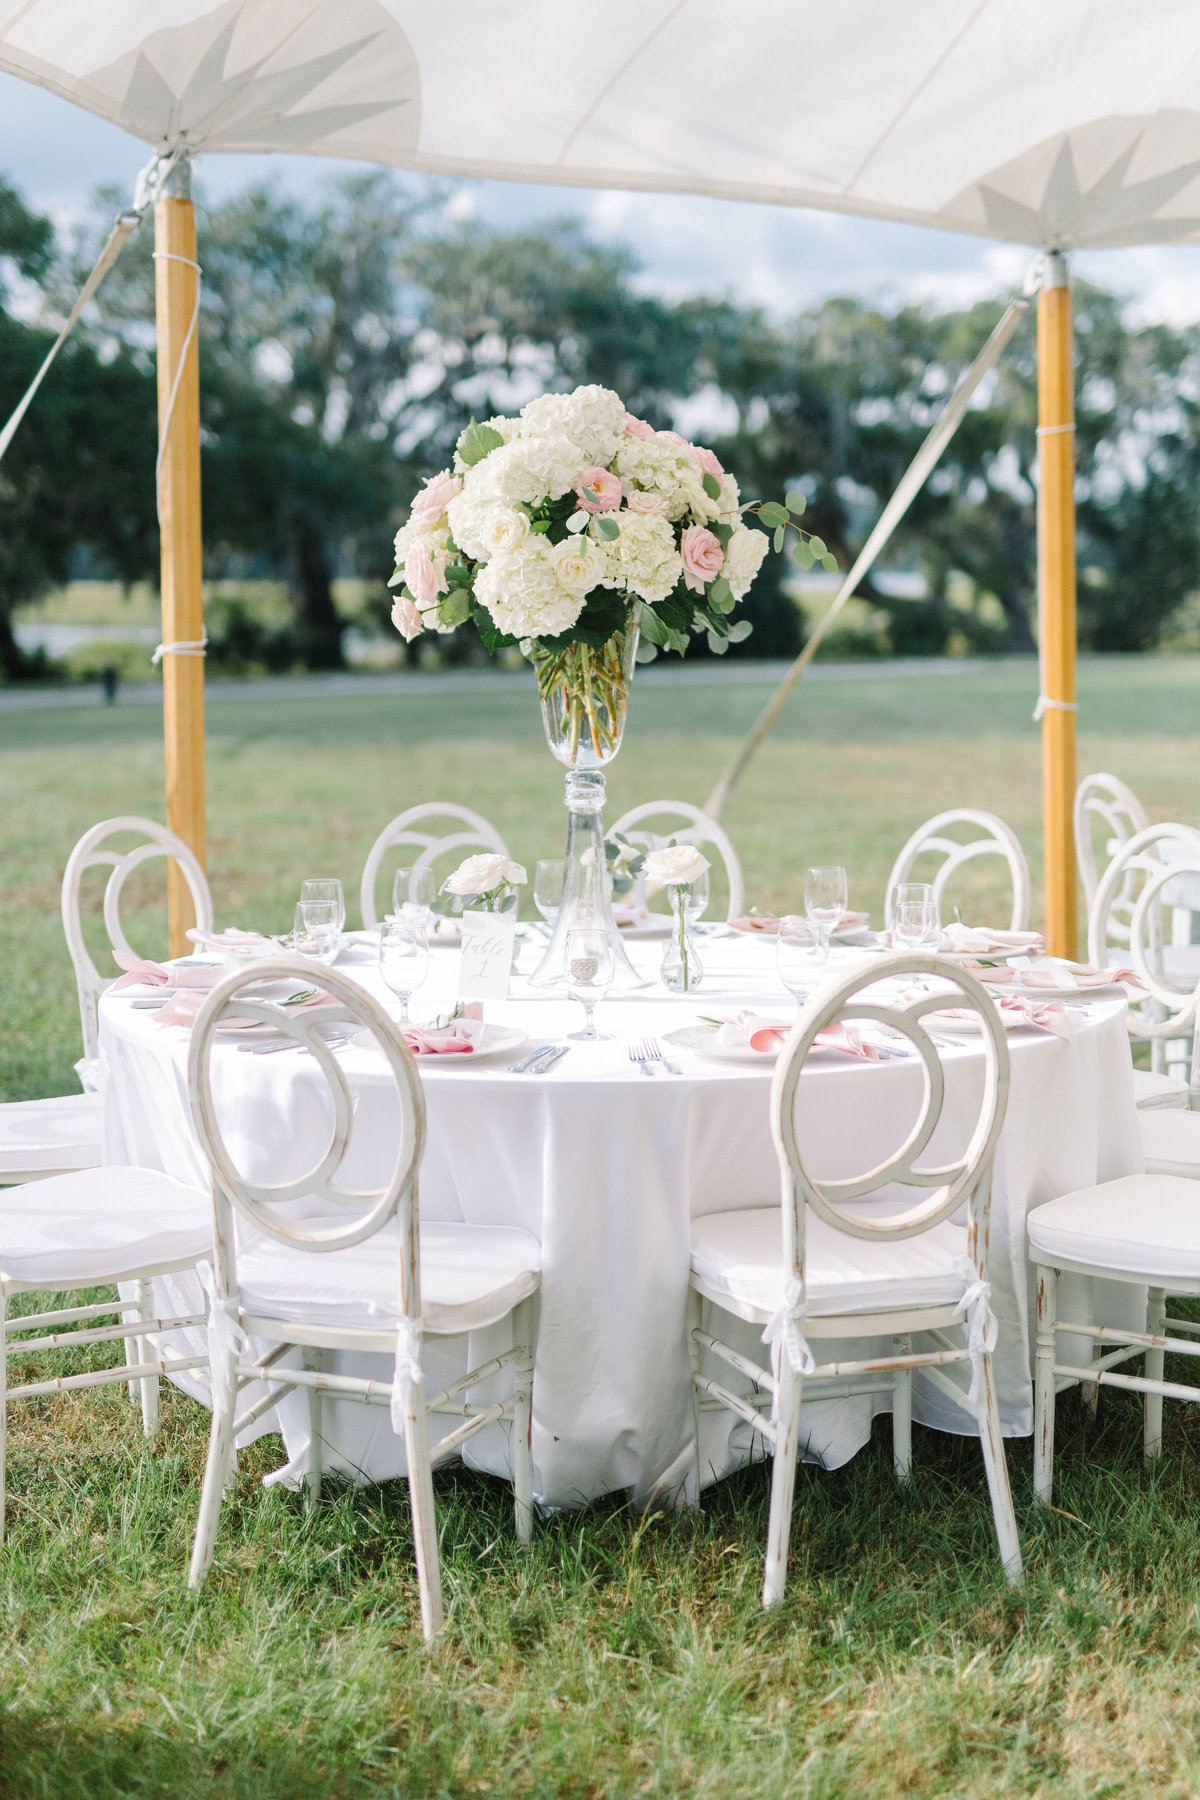 White and Blush Wedding Reception with Tall Hydrangea Centerpiece and White Chloe Chairs  under Sailcloth Tent at Boone Hall